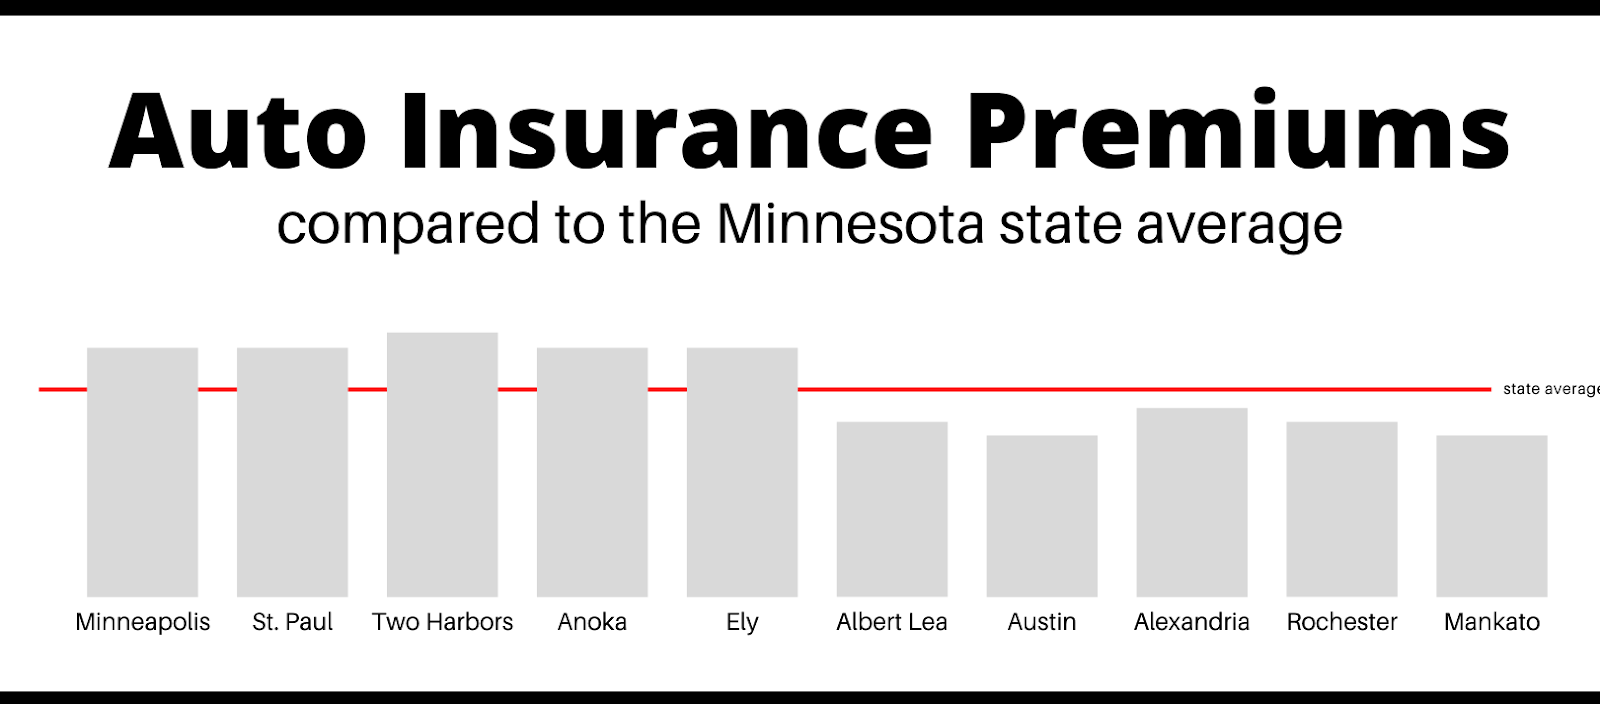 auto insurance premiums compared to the minnesota state average